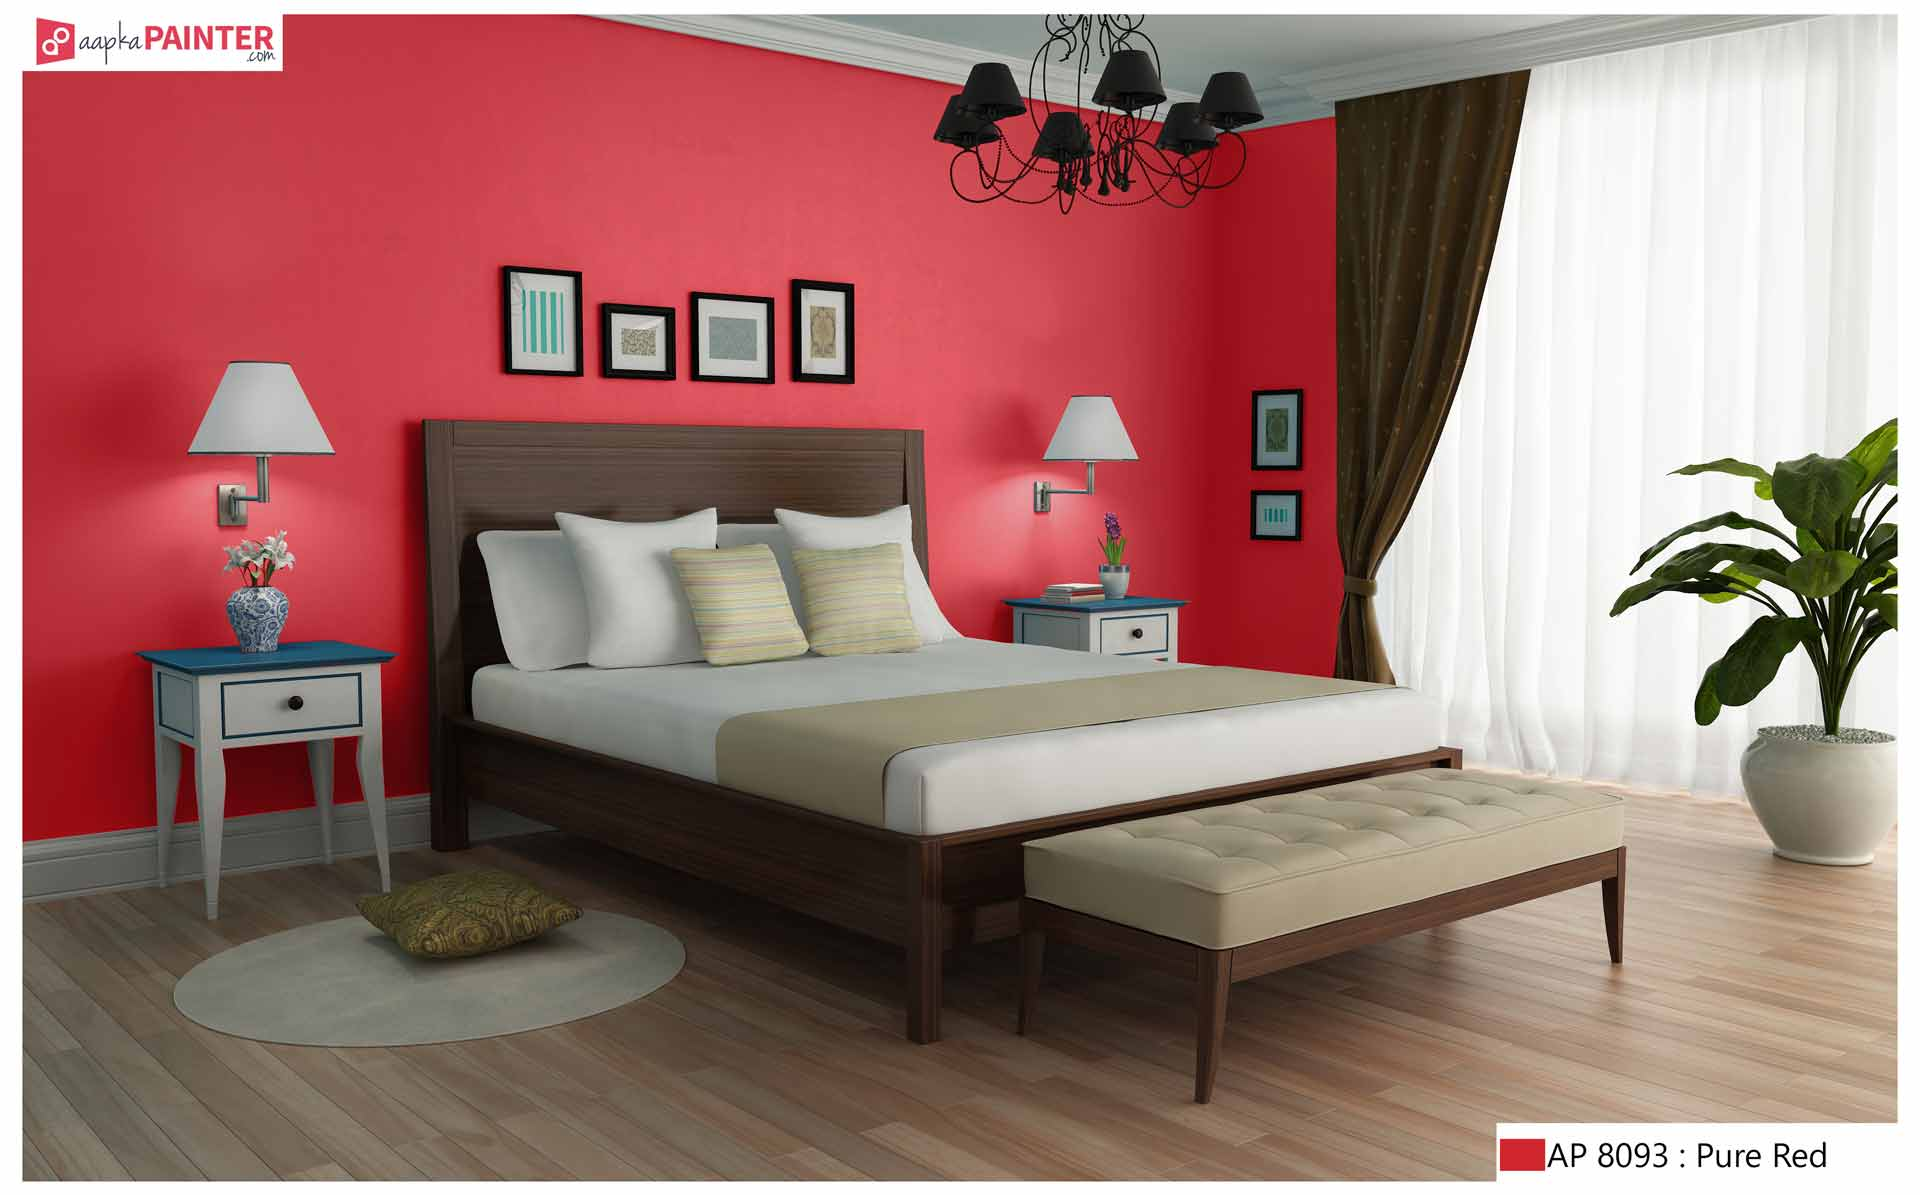 Red Paint Colors Ideas For Bedrooms. Every Time We Think Of The Color Red,  The Primary Thoughts That Strike Our Mind Are Love, Desire, Passion, ...